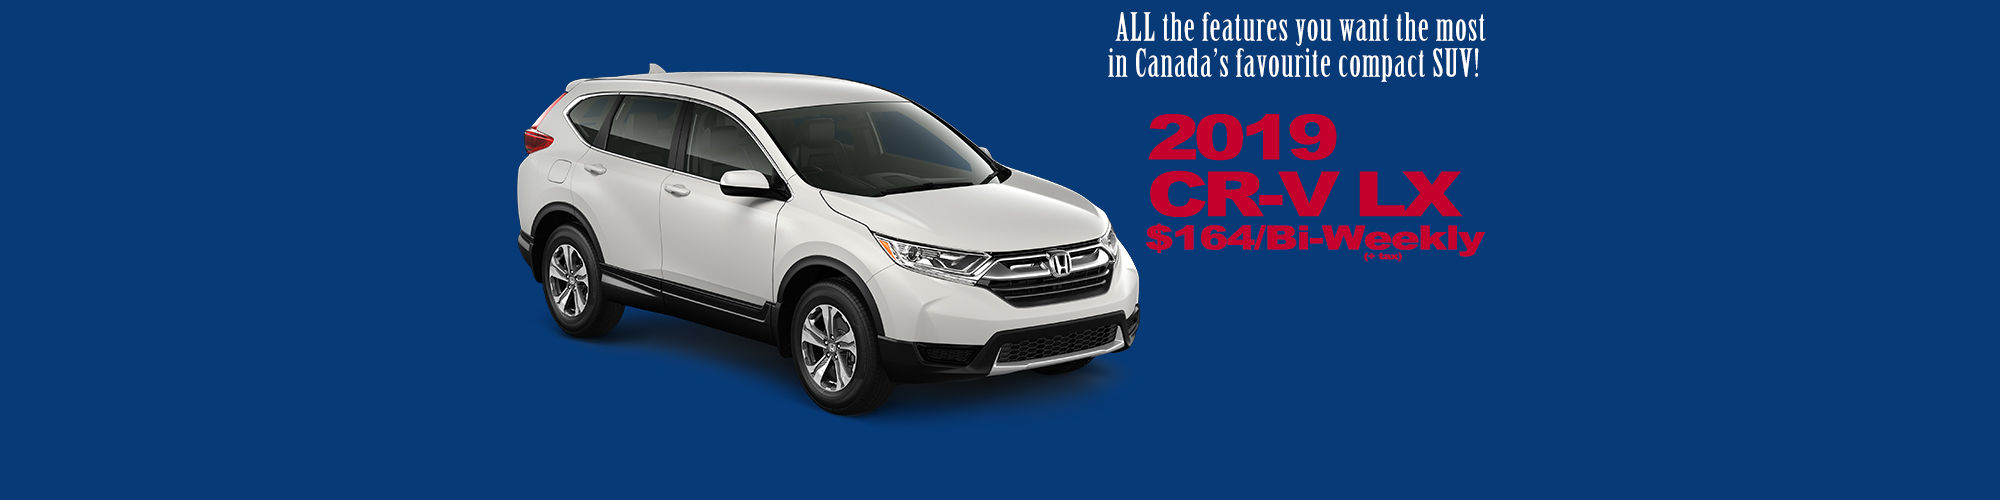 Honda CR-V LX priced at only $164 bi-weekly (plus tax) with no money down!